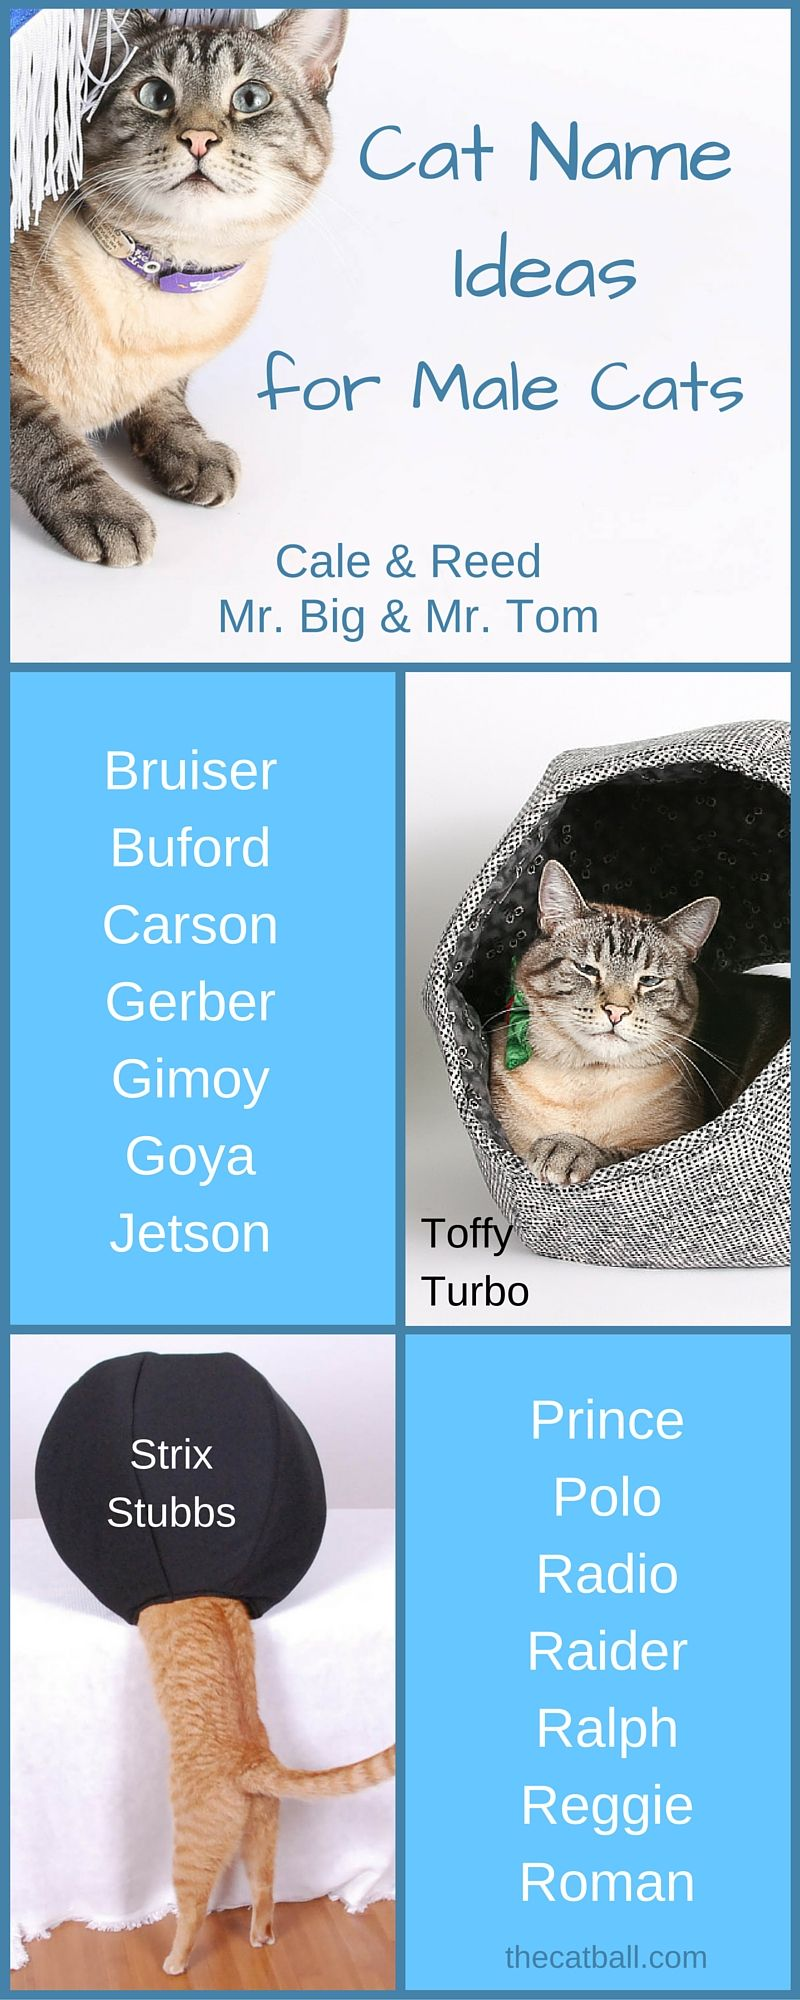 Ideas For Names For Male Cats Cat Name Ideas For Male Cats Do You Have A New Cat Names Names For Male Cats Kitten Names